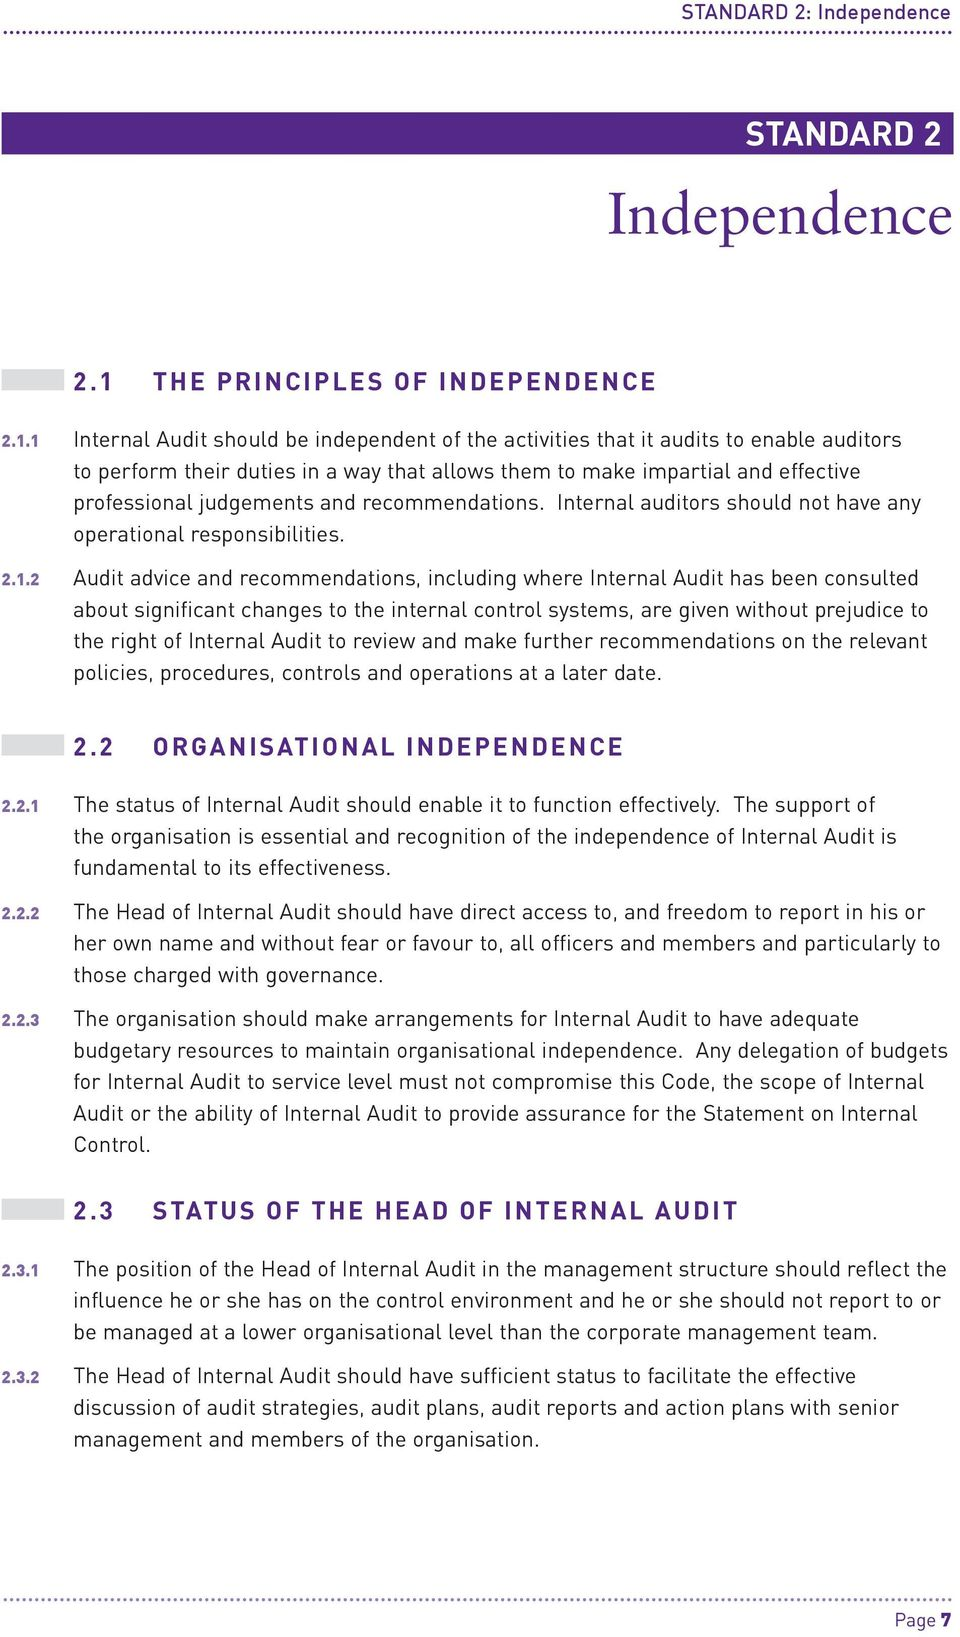 1 Internal Audit should be independent of the activities that it audits to enable auditors to perform their duties in a way that allows them to make impartial and effective professional judgements